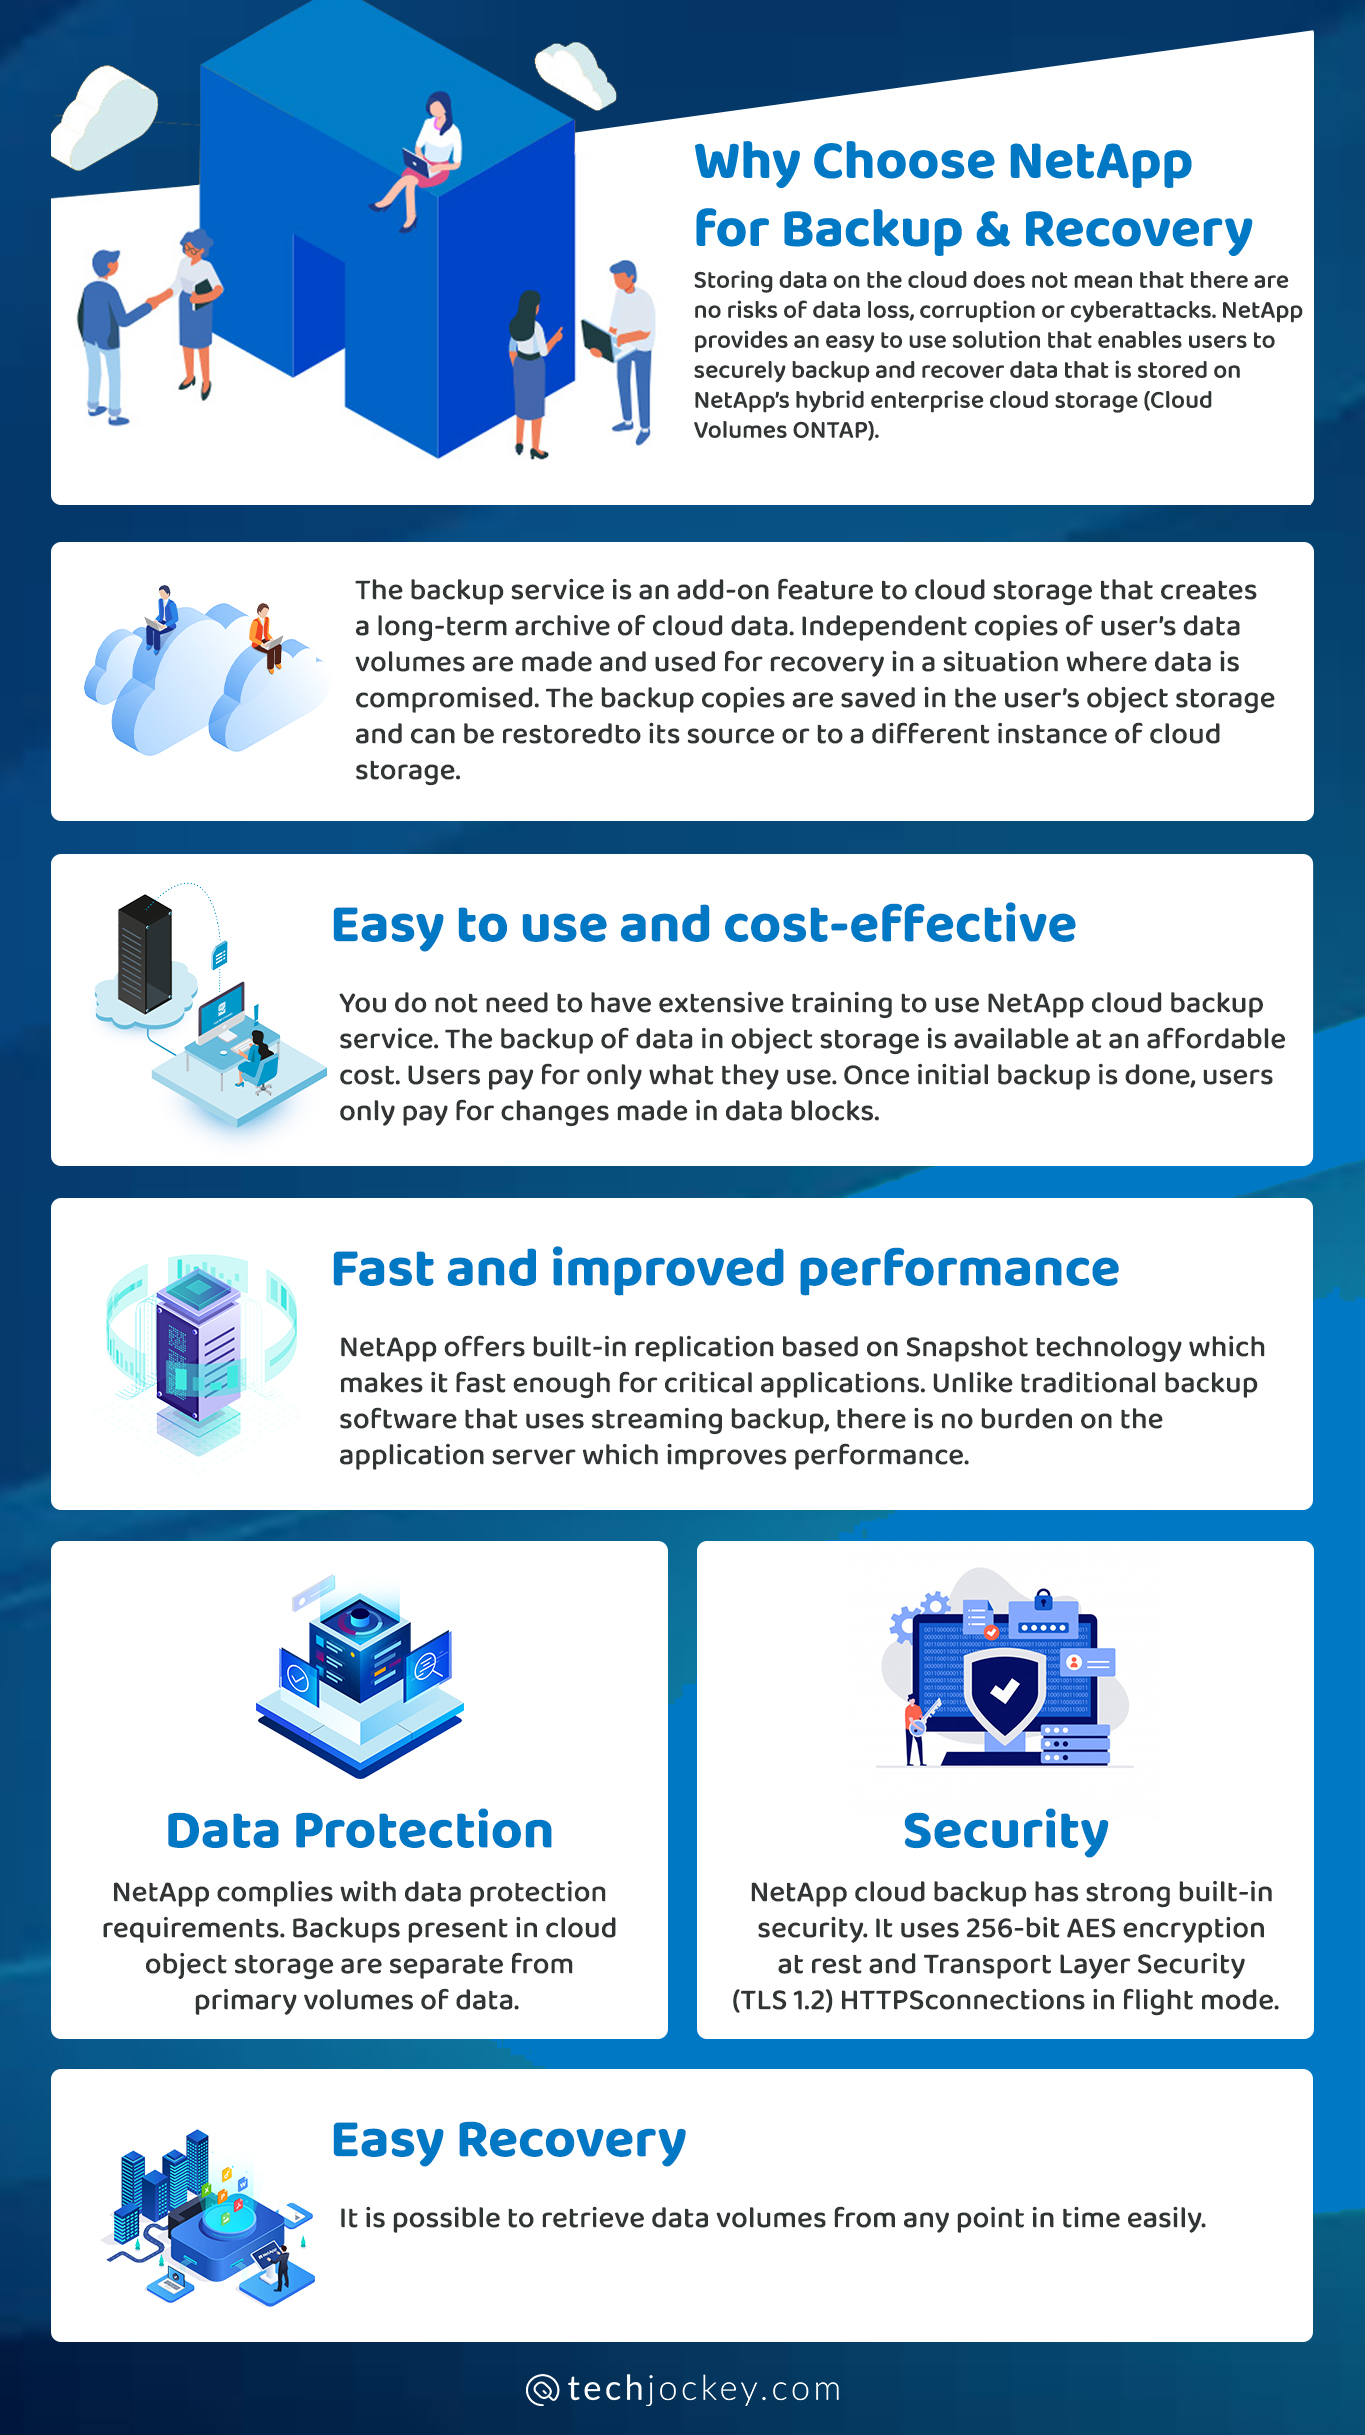 Why Choose NetApp for Backup & Recovery